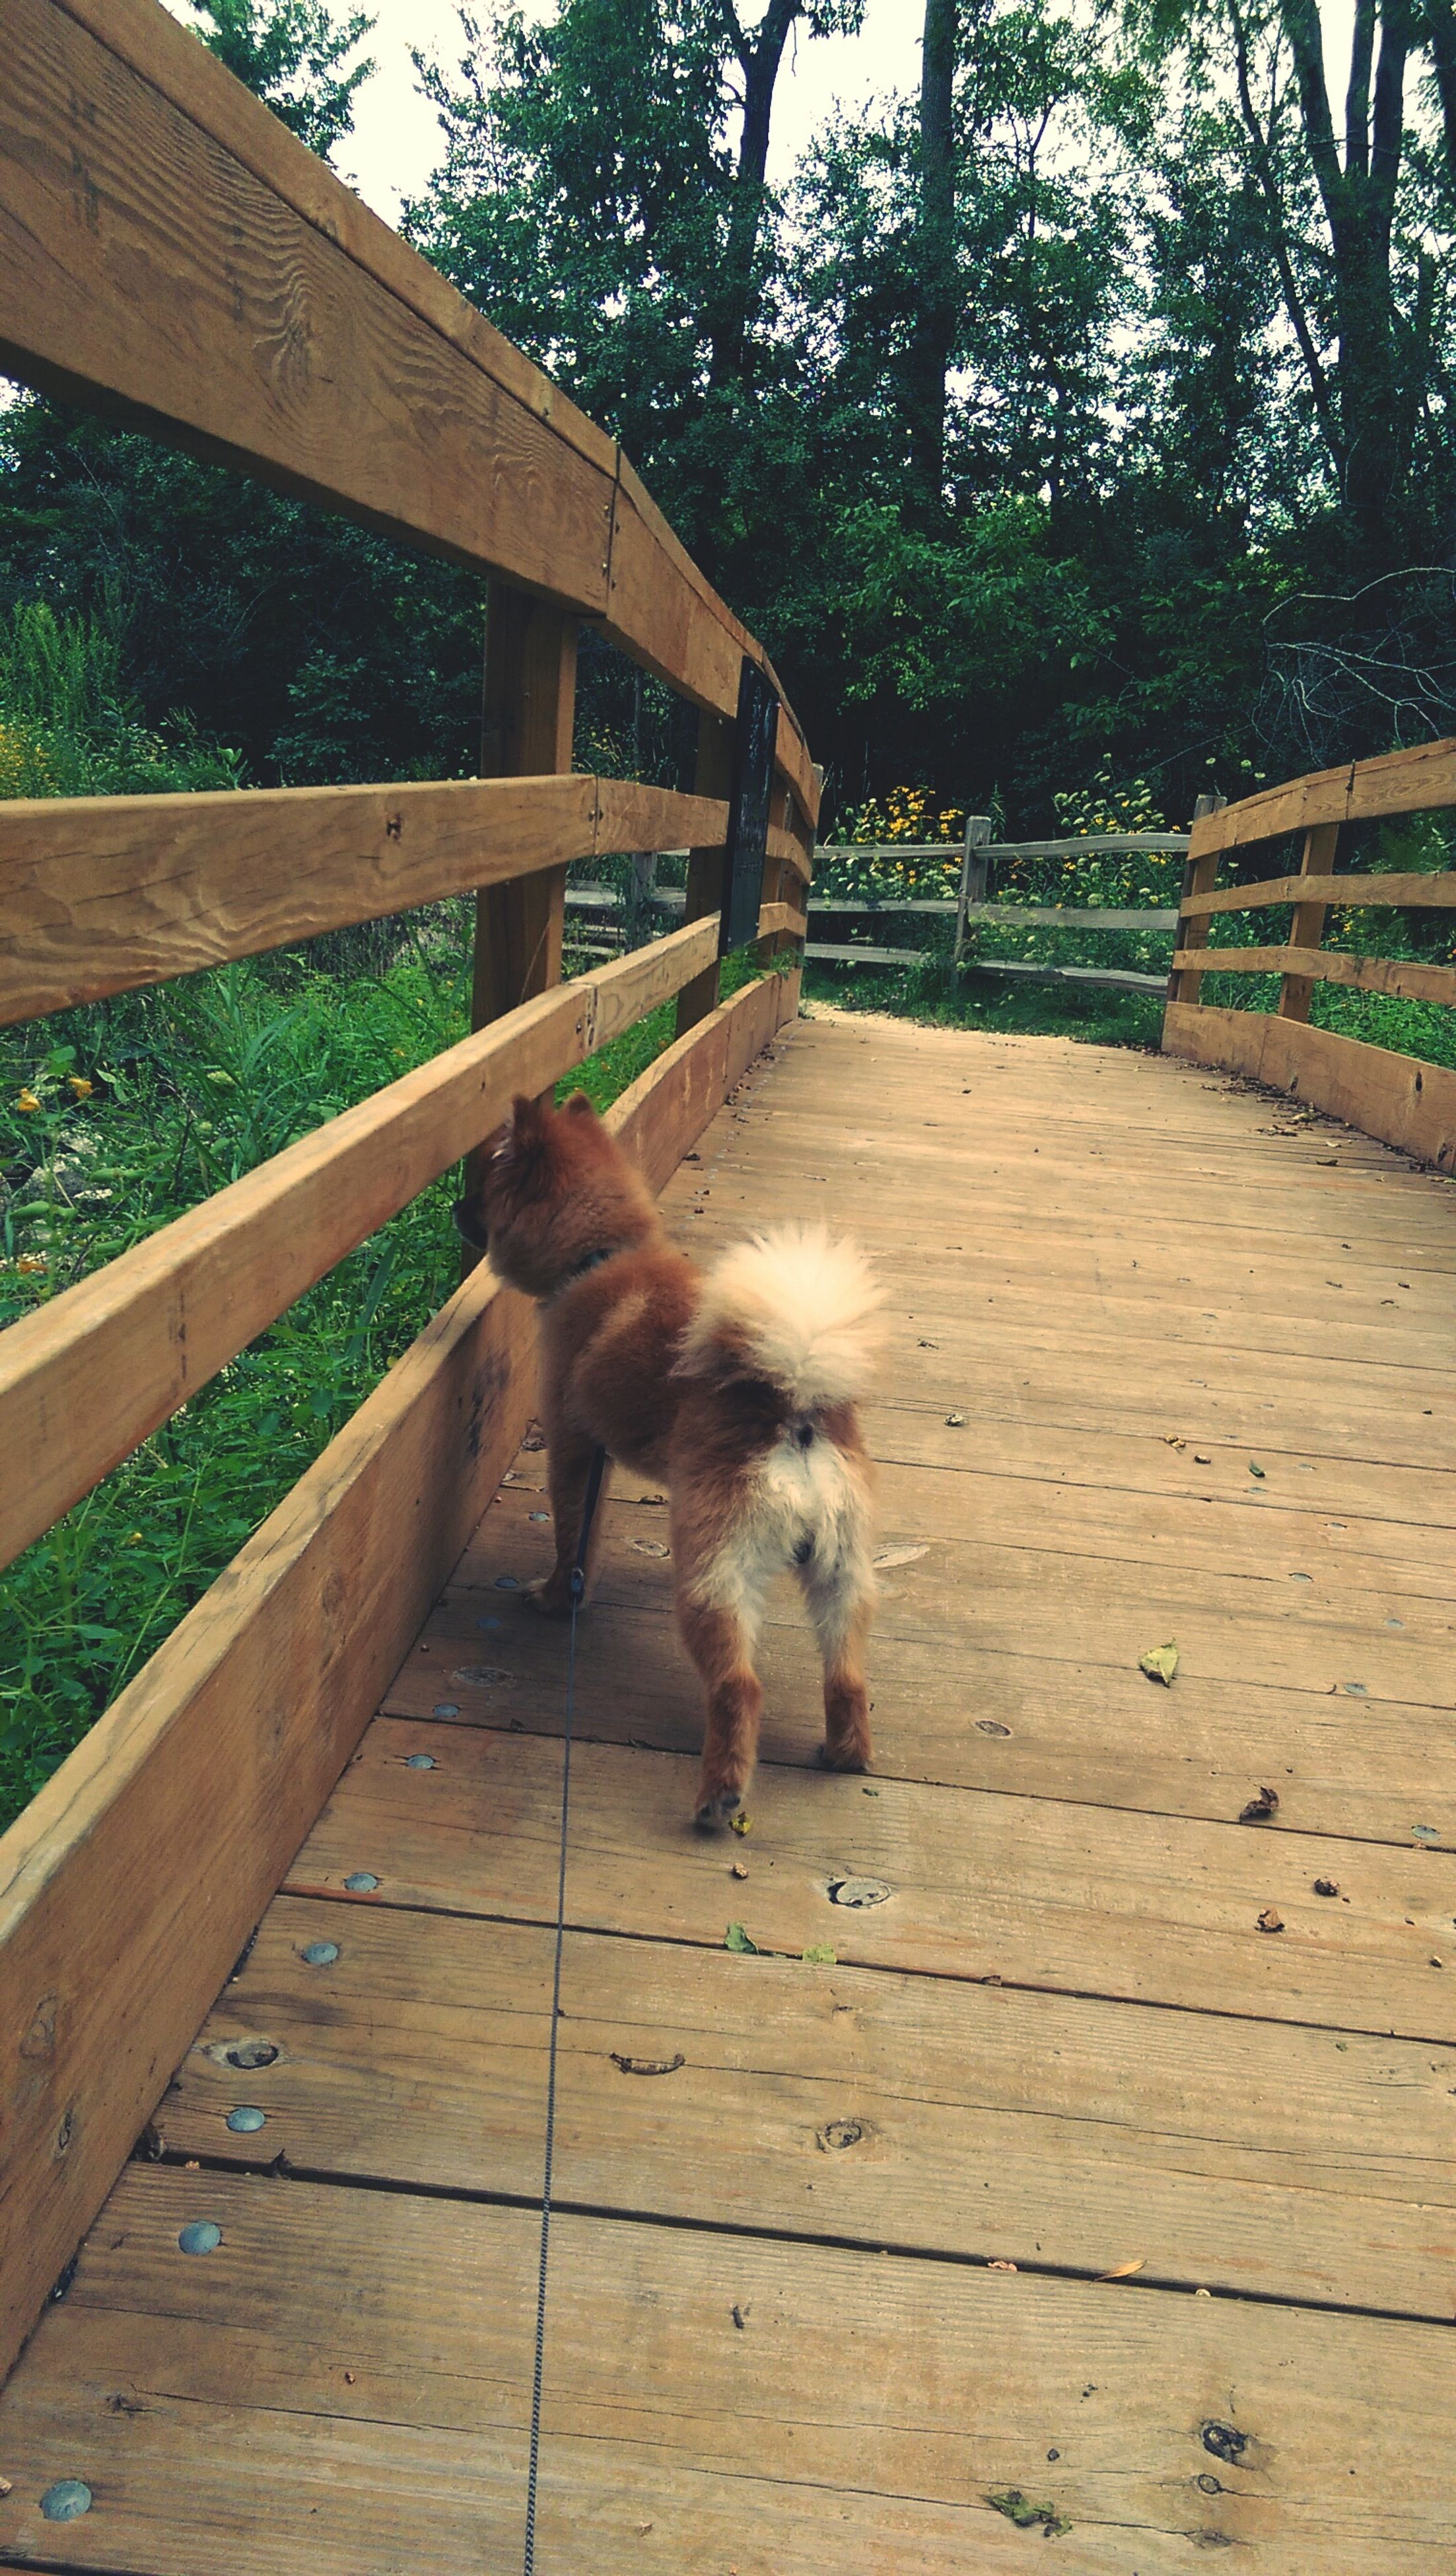 animal themes, domestic animals, mammal, one animal, pets, tree, dog, full length, built structure, sunlight, fence, building exterior, outdoors, day, railing, plant, architecture, no people, house, wood - material